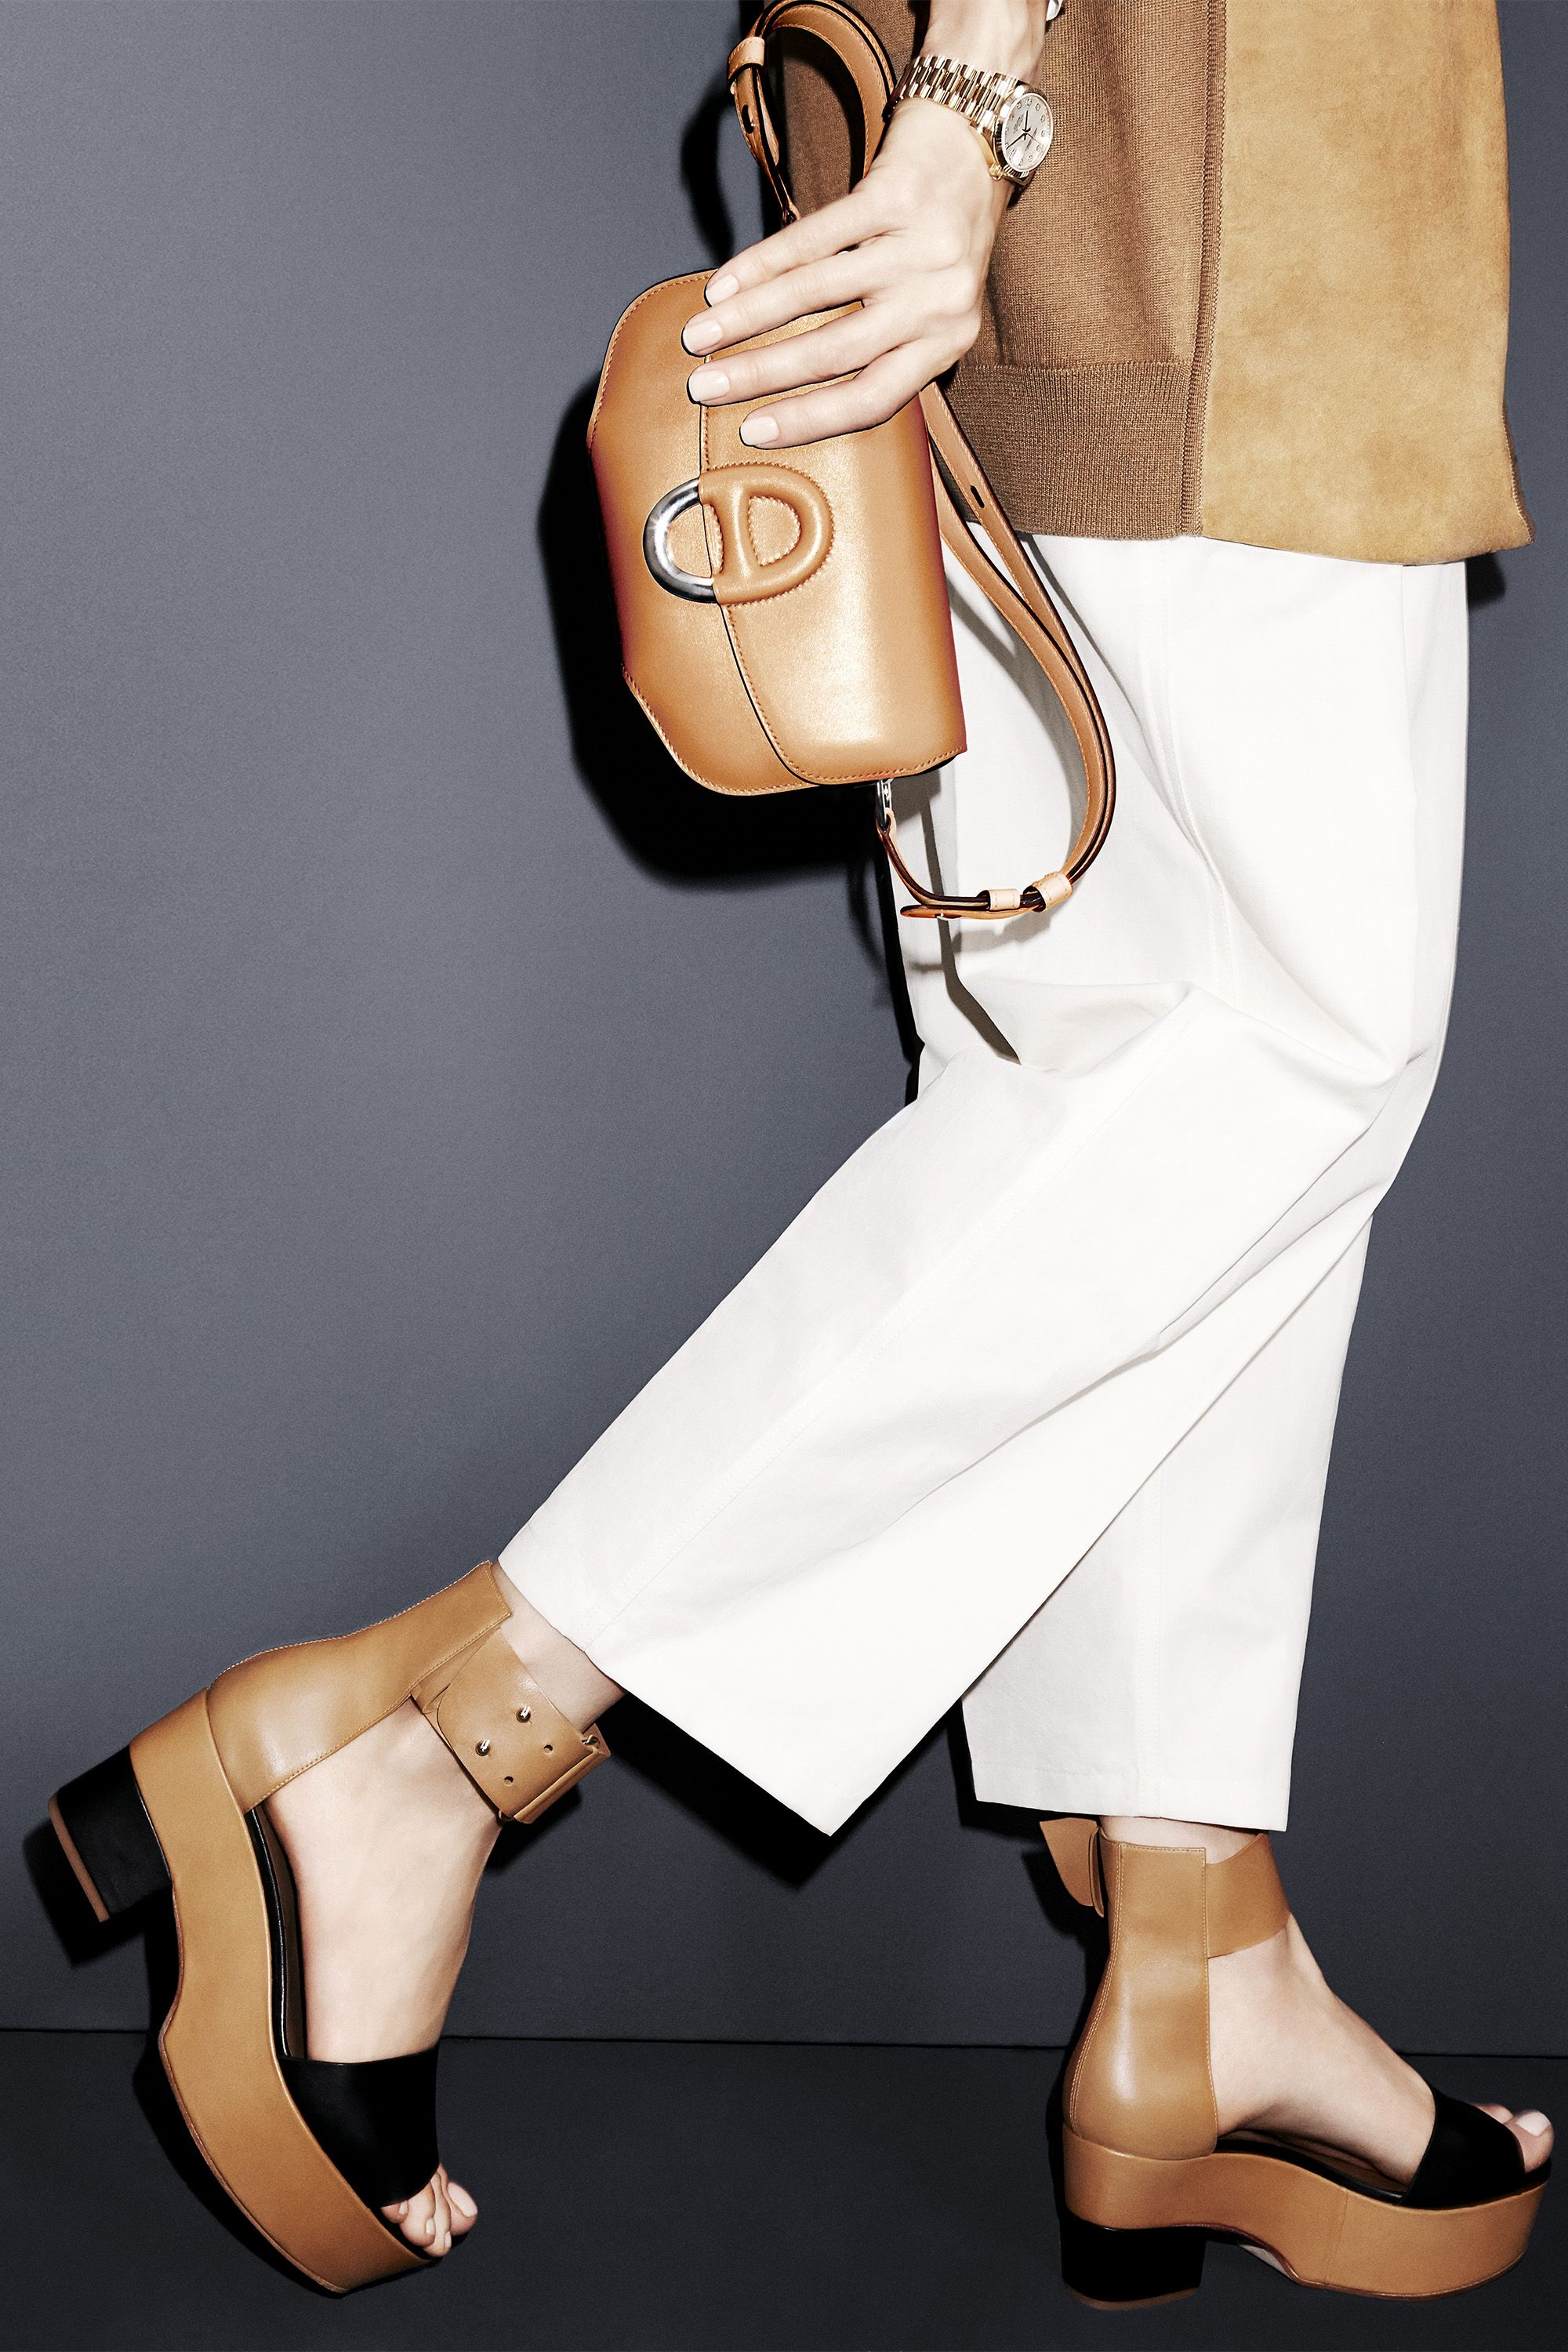 "Get a lift in the season's must-have shoe paired with these generously proportioned trousers that are spring-ready in white.  <strong>Hermès</strong> cardigan, $4,900, pants, $1,475, bag, $8,050 and sandals, $990, 800-441-4488; <strong>Rolex</strong> watch, $31,200, <a href=""http://www.rolex.com"" target=""_blank"">rolex.com</a>."